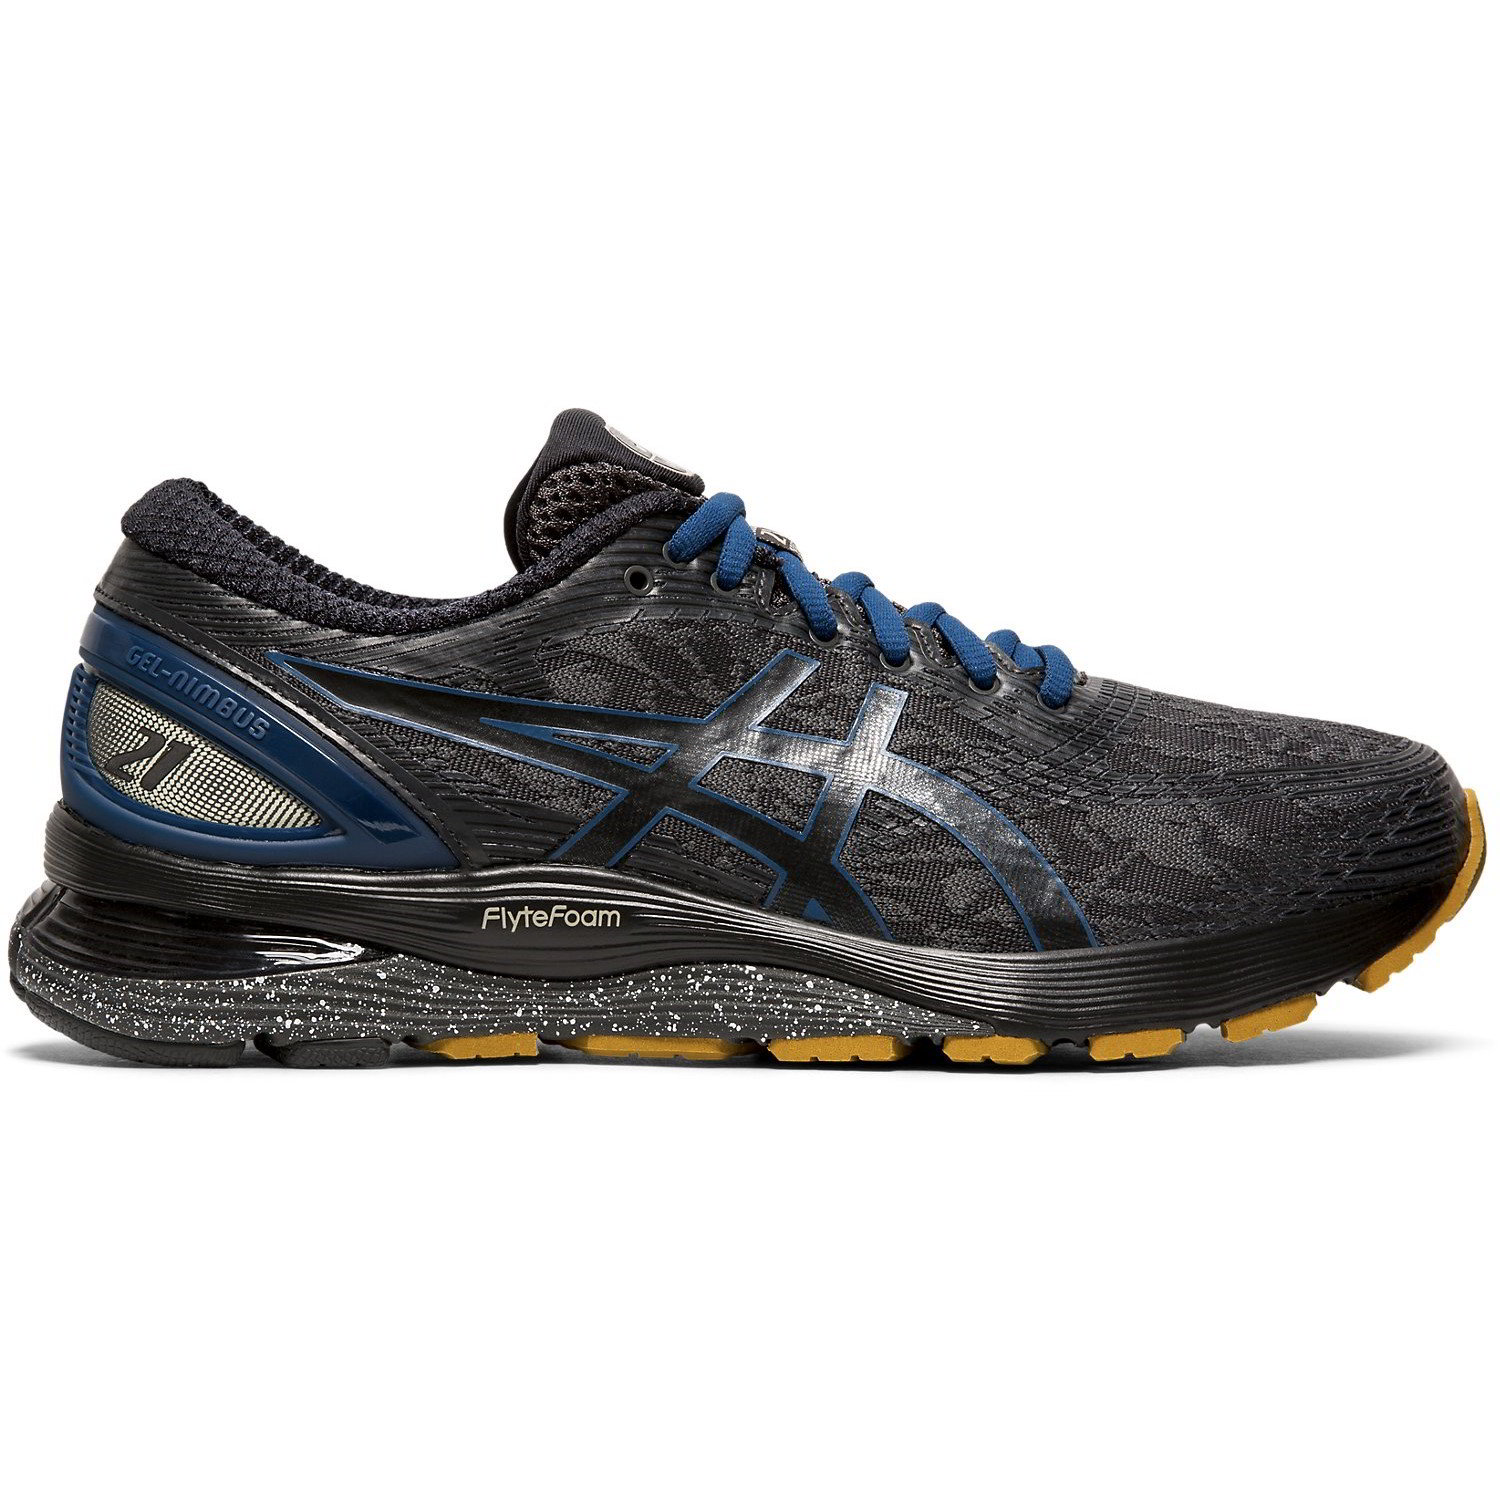 Details zu Asics Gel Nimbus 21 Winterized Mens Trail Running Shoes Trainers Size UK 8 15